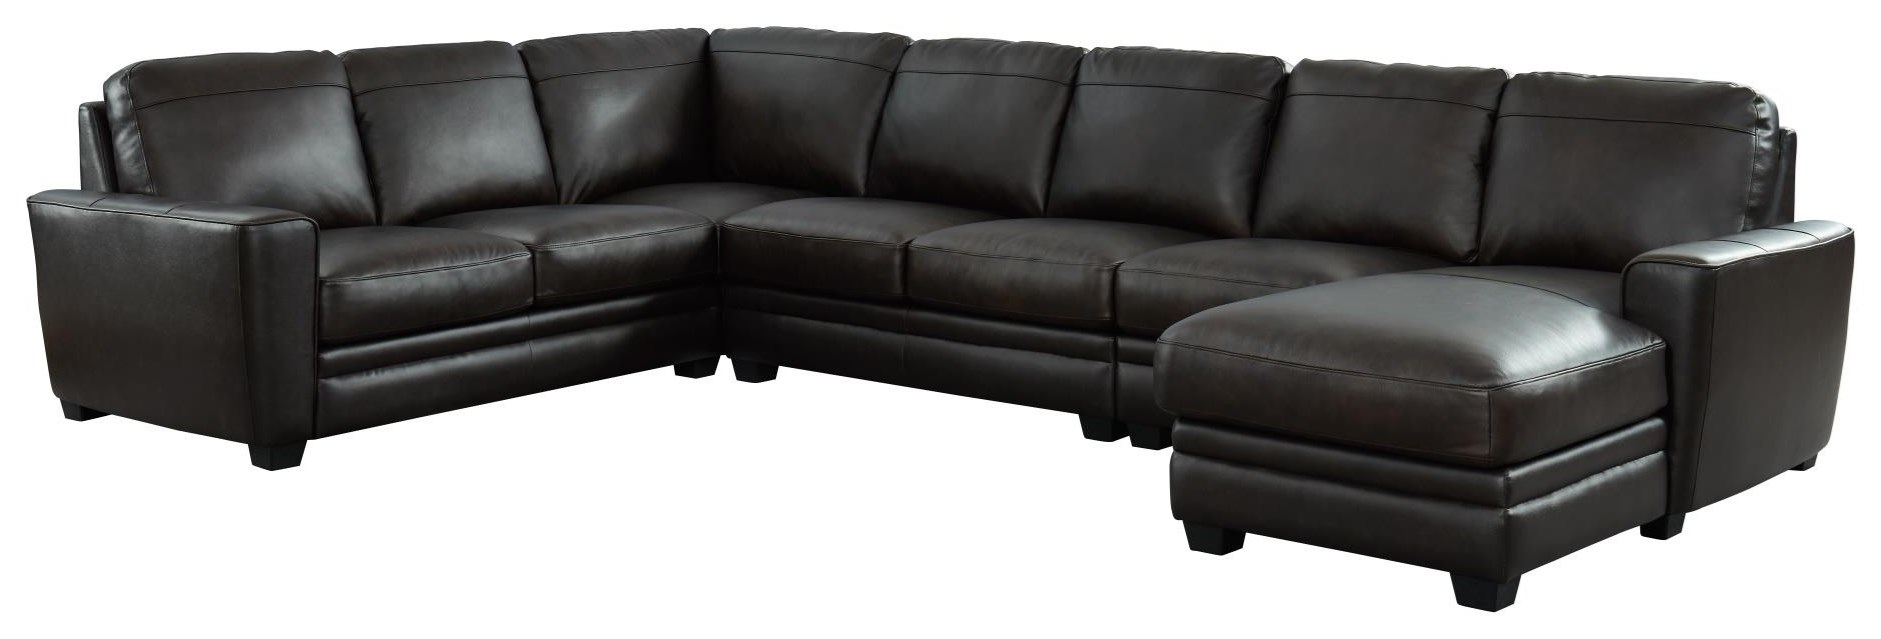 7518 Sectional Four Piece Sectional by Niroflex Leather at Furniture Fair - North Carolina